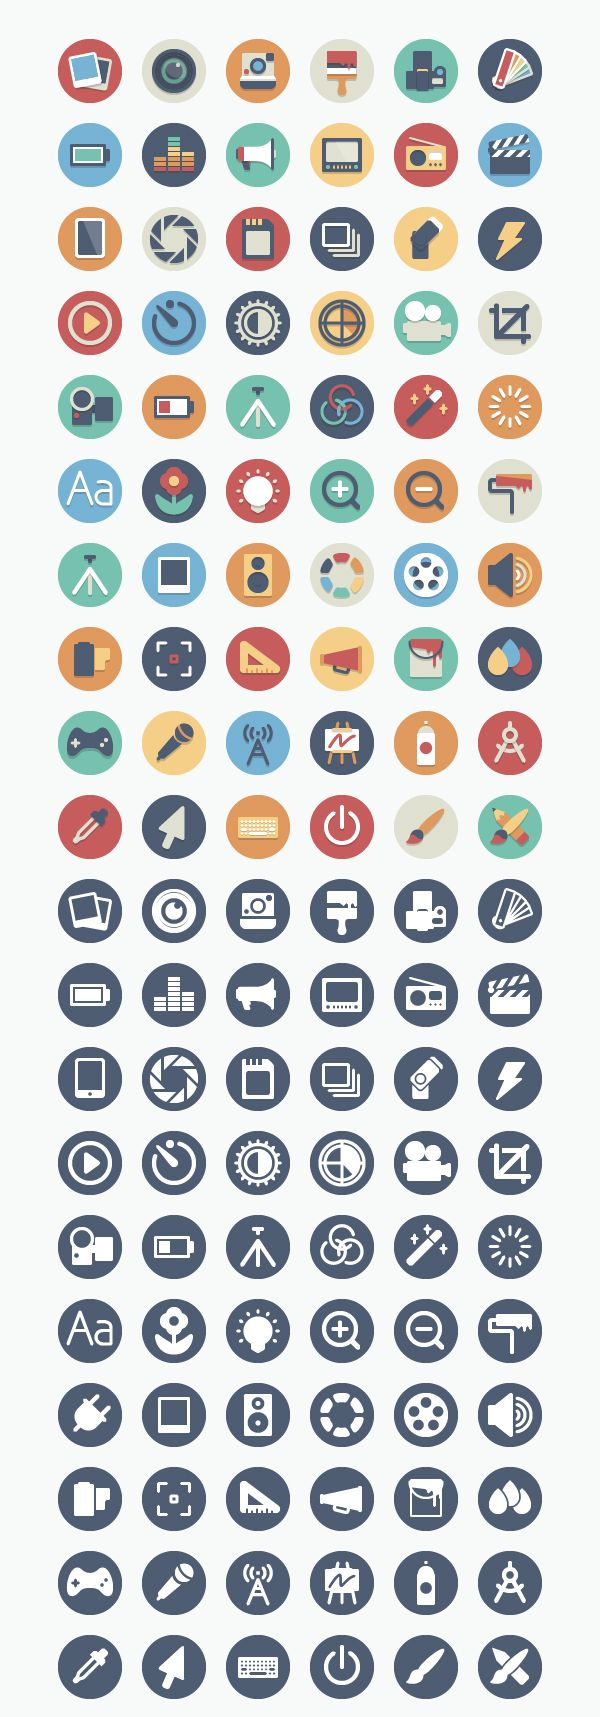 Our Flat Icon Set Gets A Media Makeover | Our circular flat icon set gets a media makeover today with yet another addition to the already-awesome collection! We have added 60 media themed icons to this set making for a total of 192 icons. The icons come in two variations: full color and single color and they are packaged in .ai, .eps, .pdf, and .png (64px and 128px).